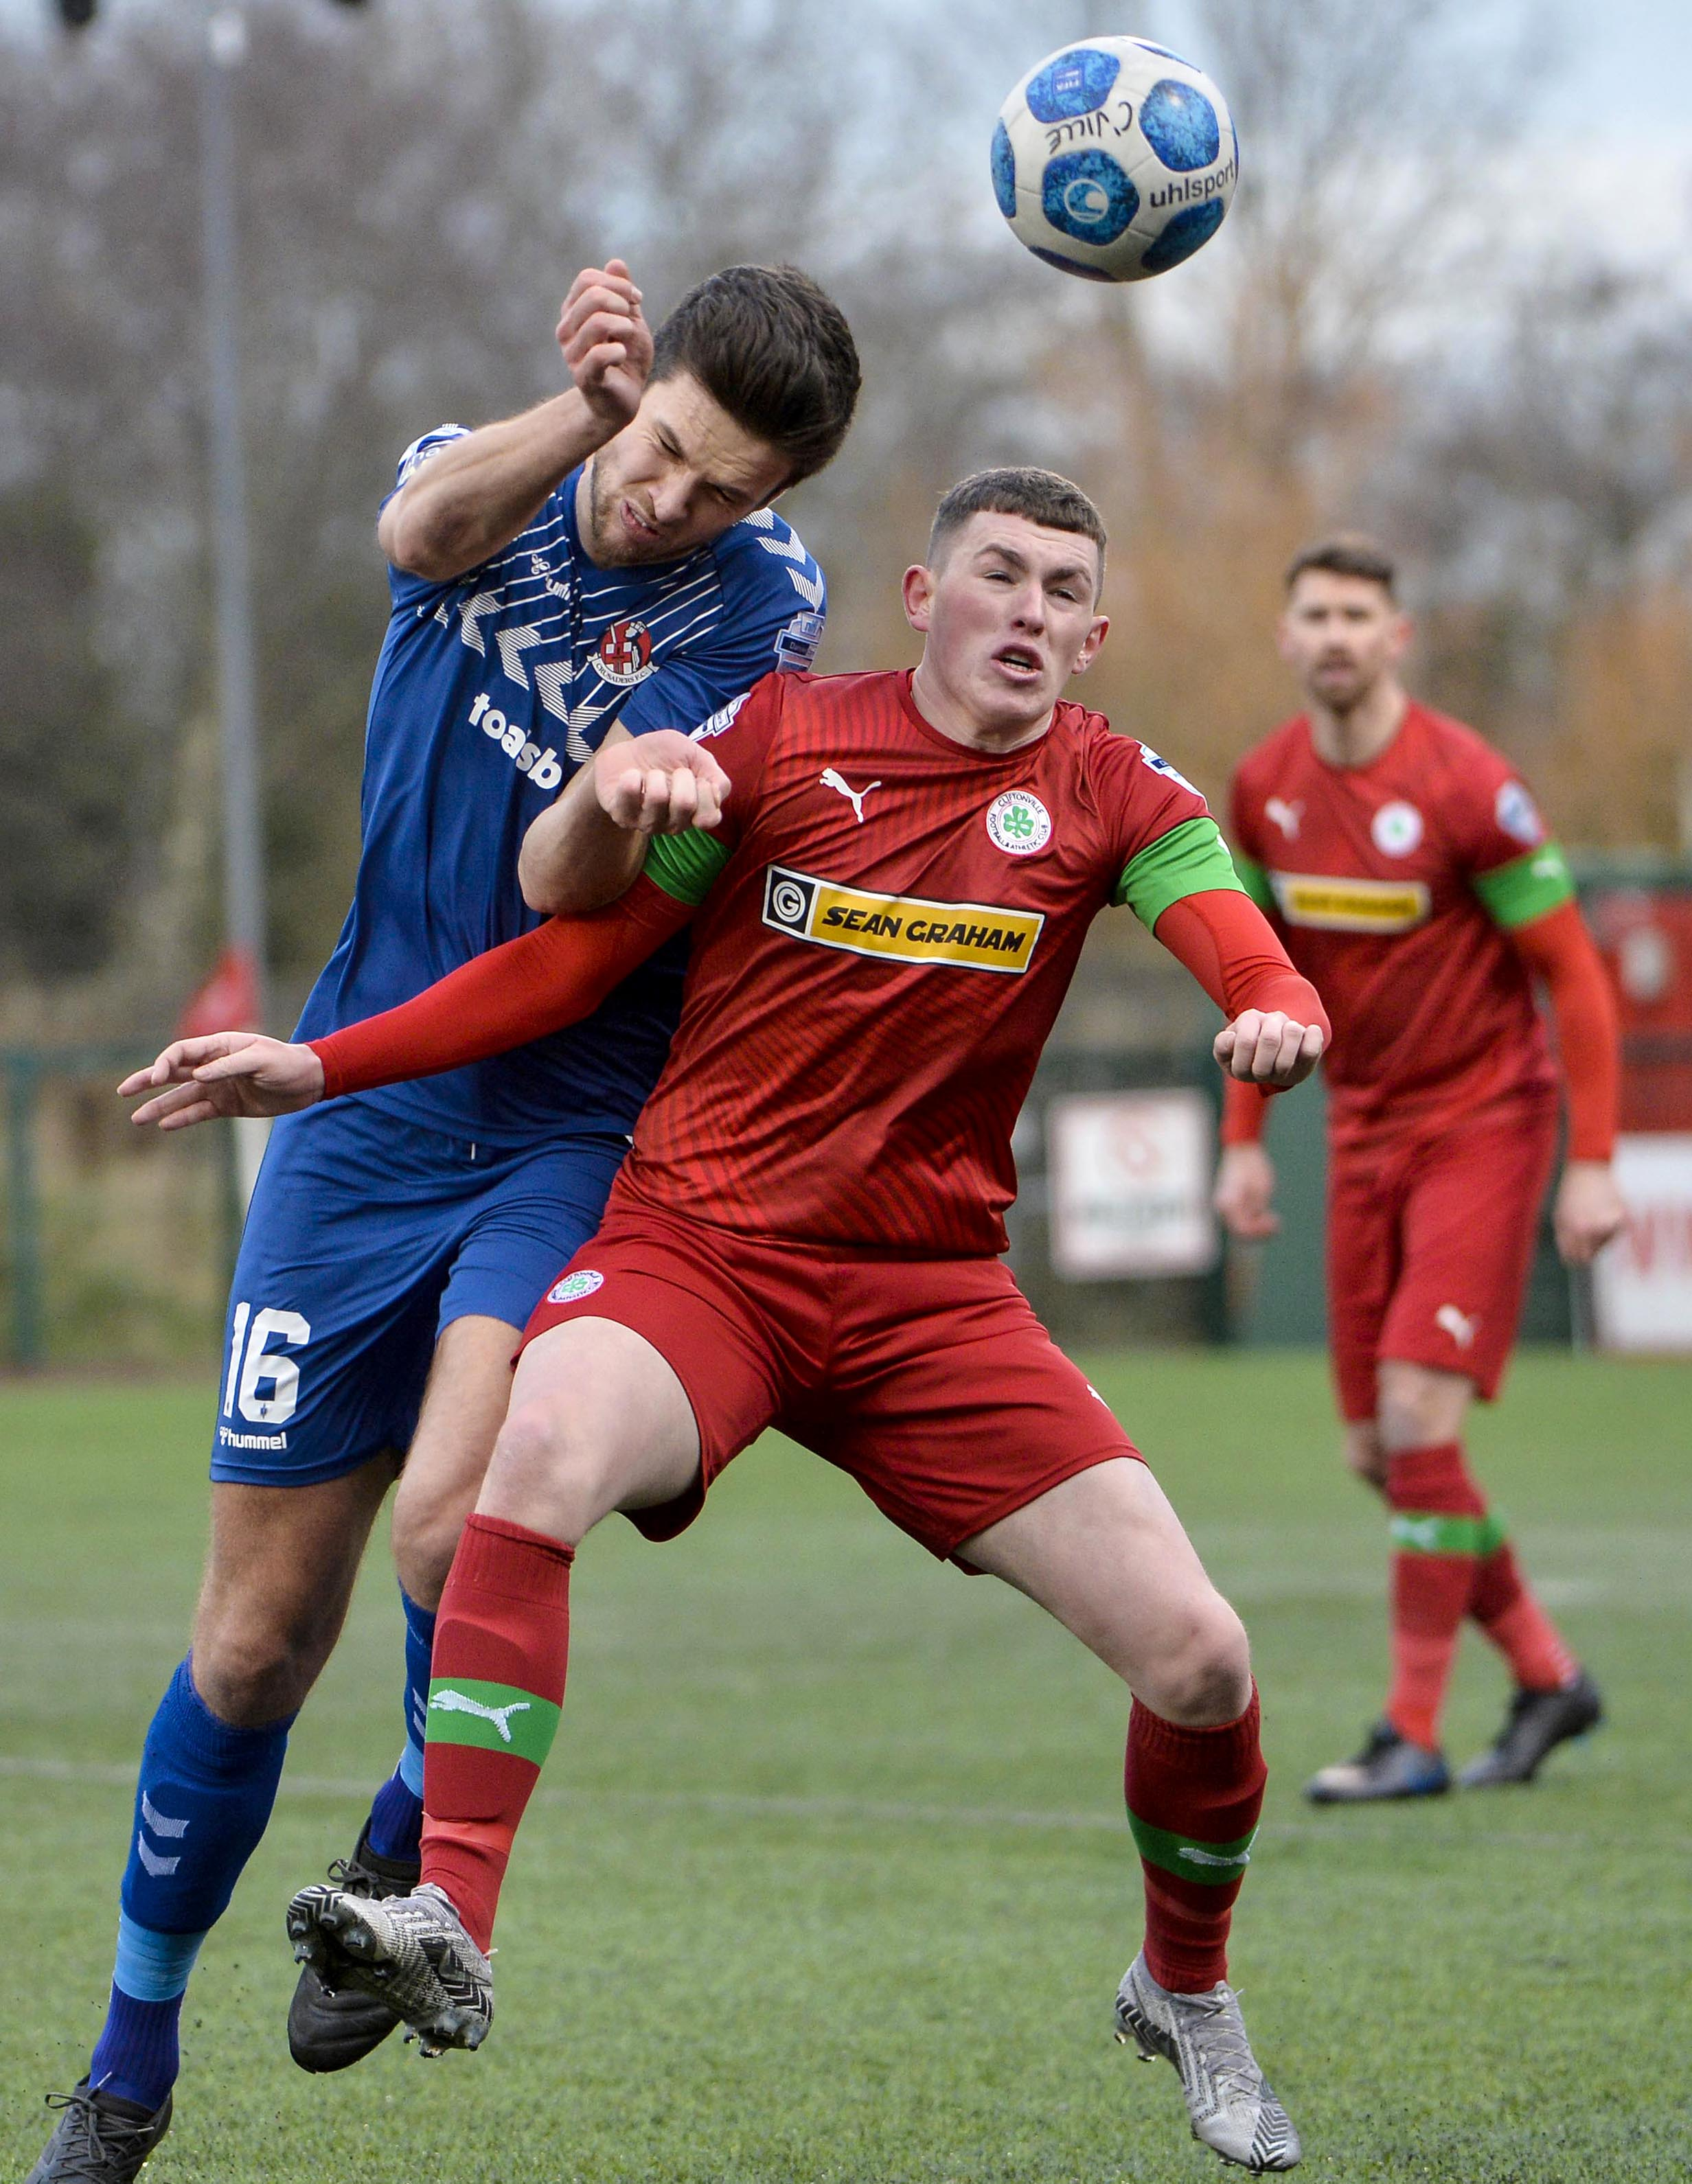 Cliftonville and Crusaders meet once again this evening with The Reds west to get the better of their North Belfast rivals this season